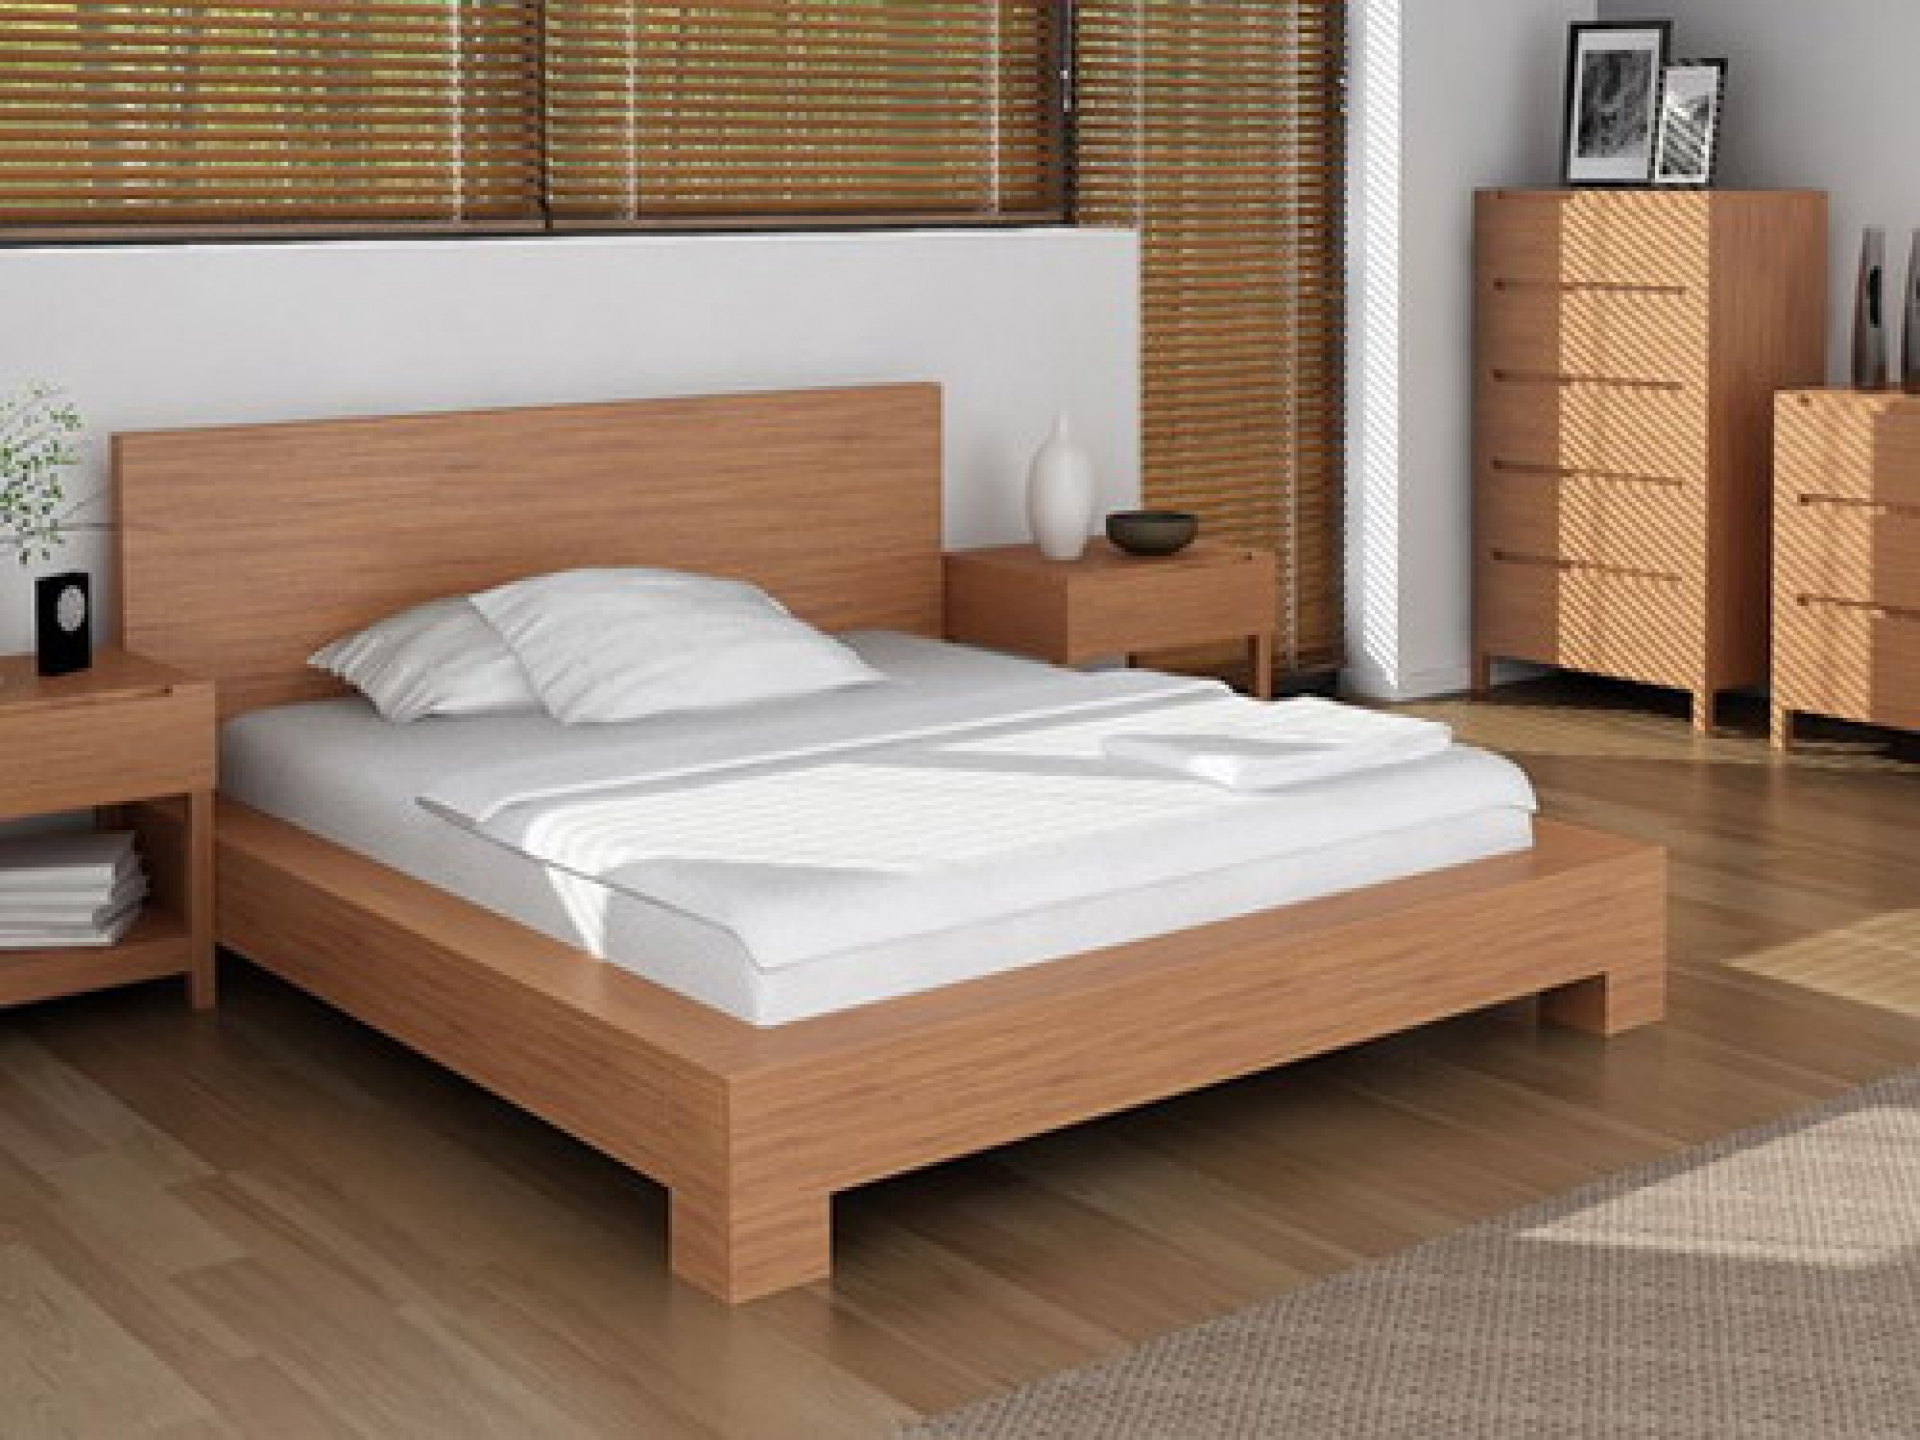 Simple wood bed frame ideas homesfeed for Bed design photos